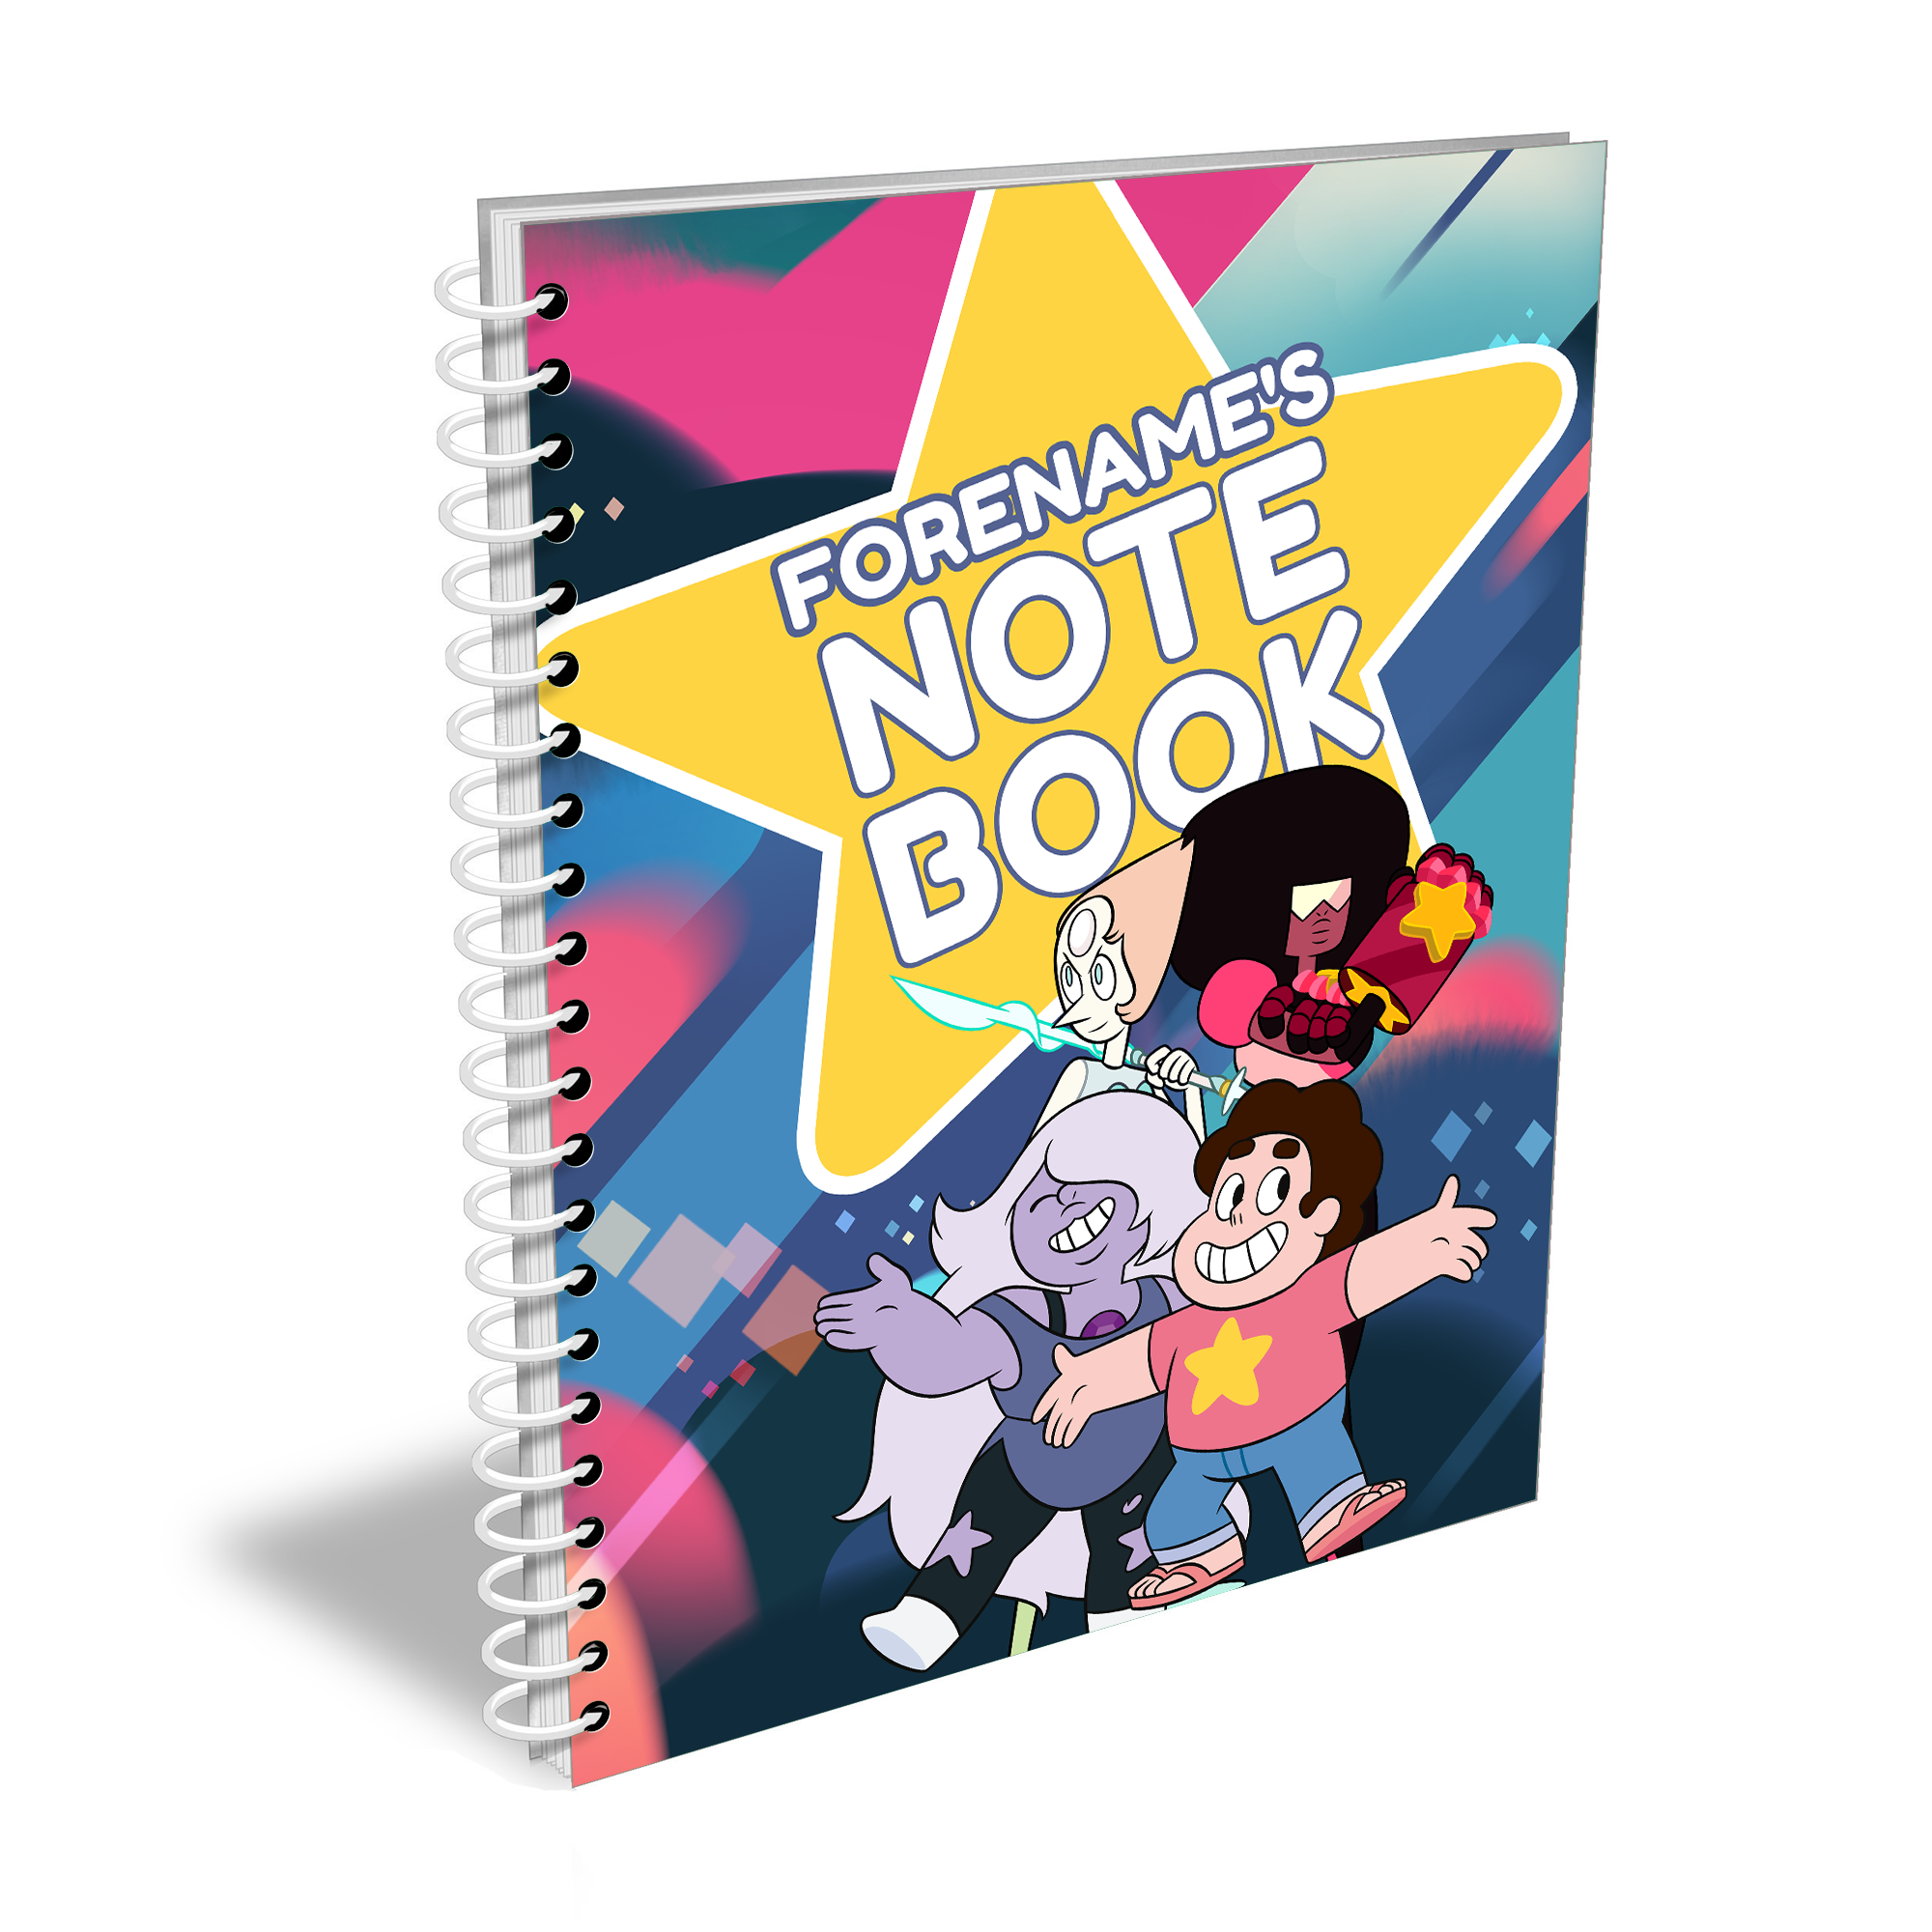 Steven Universe Star Notebook